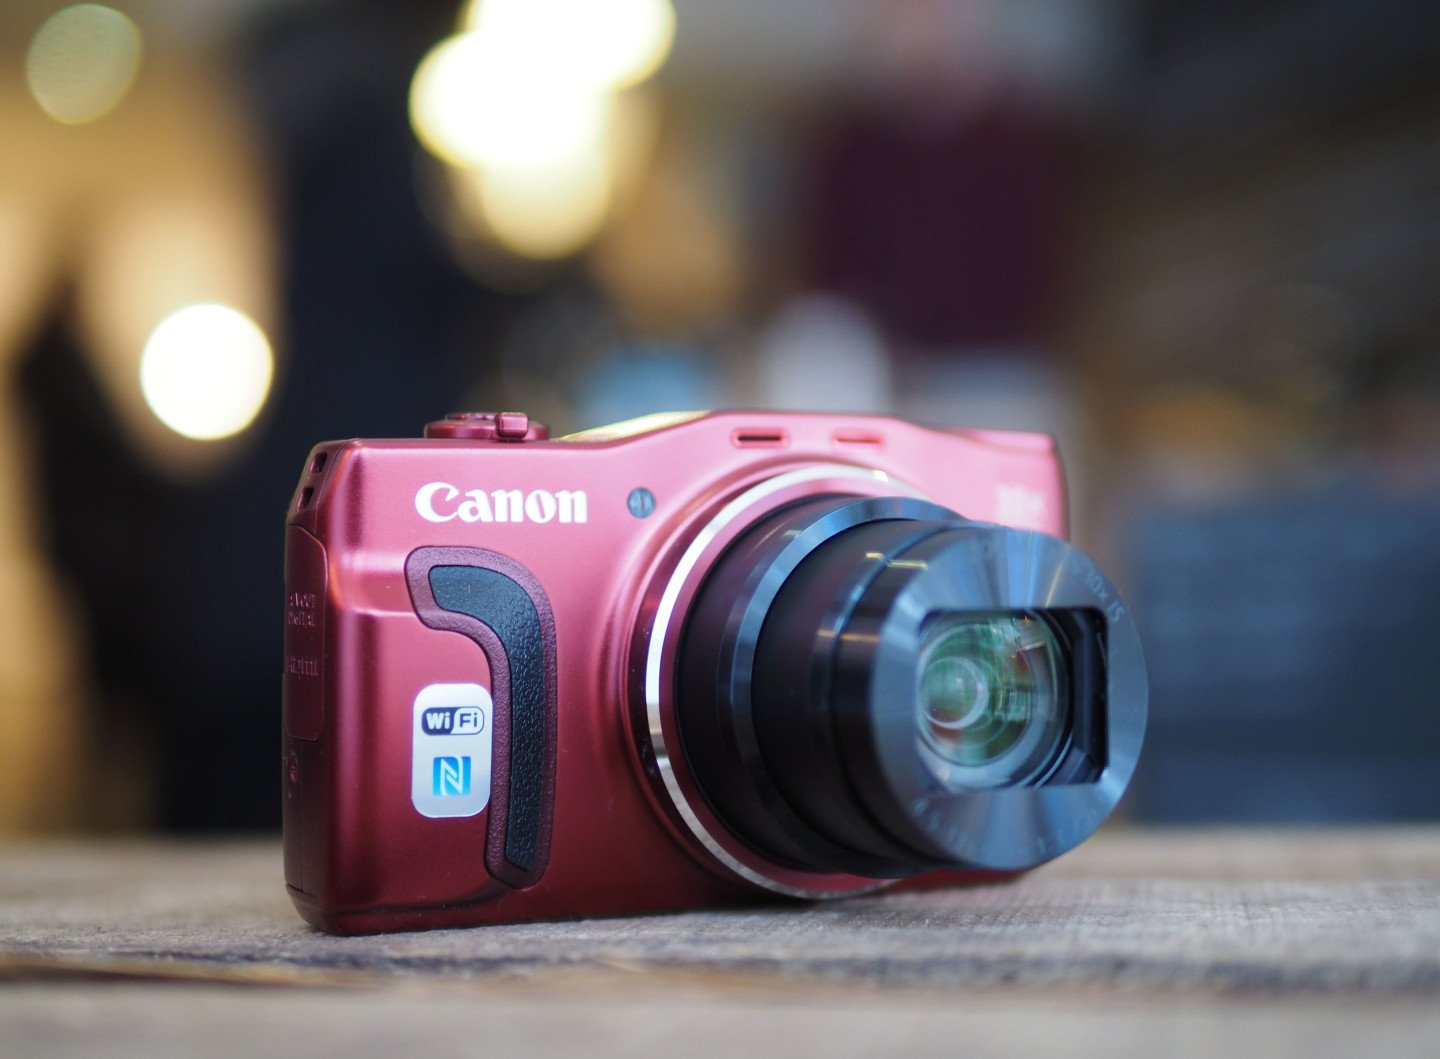 Canon SX710HS featured